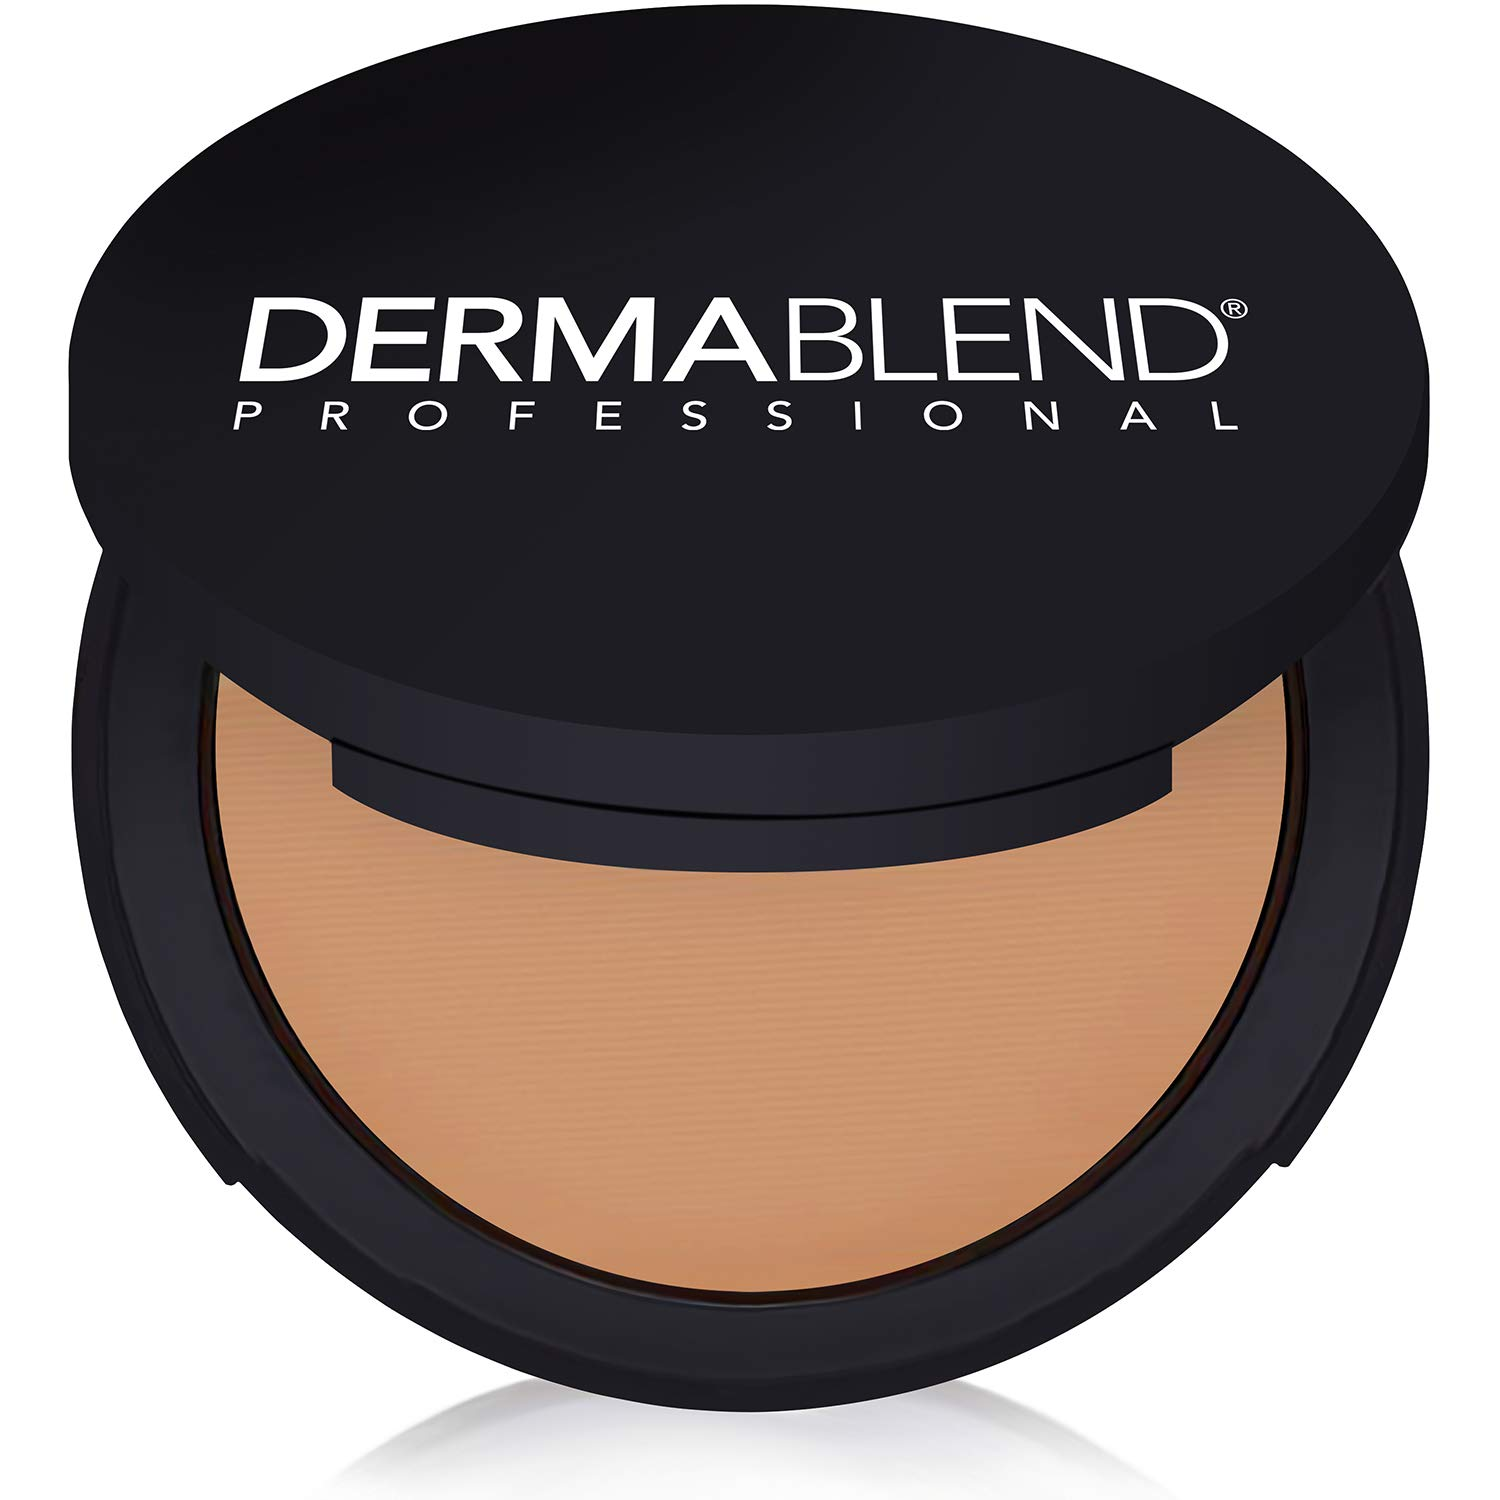 Dermablend Intense Powder Camo, Buildable Coverage Mattifying Powder Foundation Makeup, 0.48oz